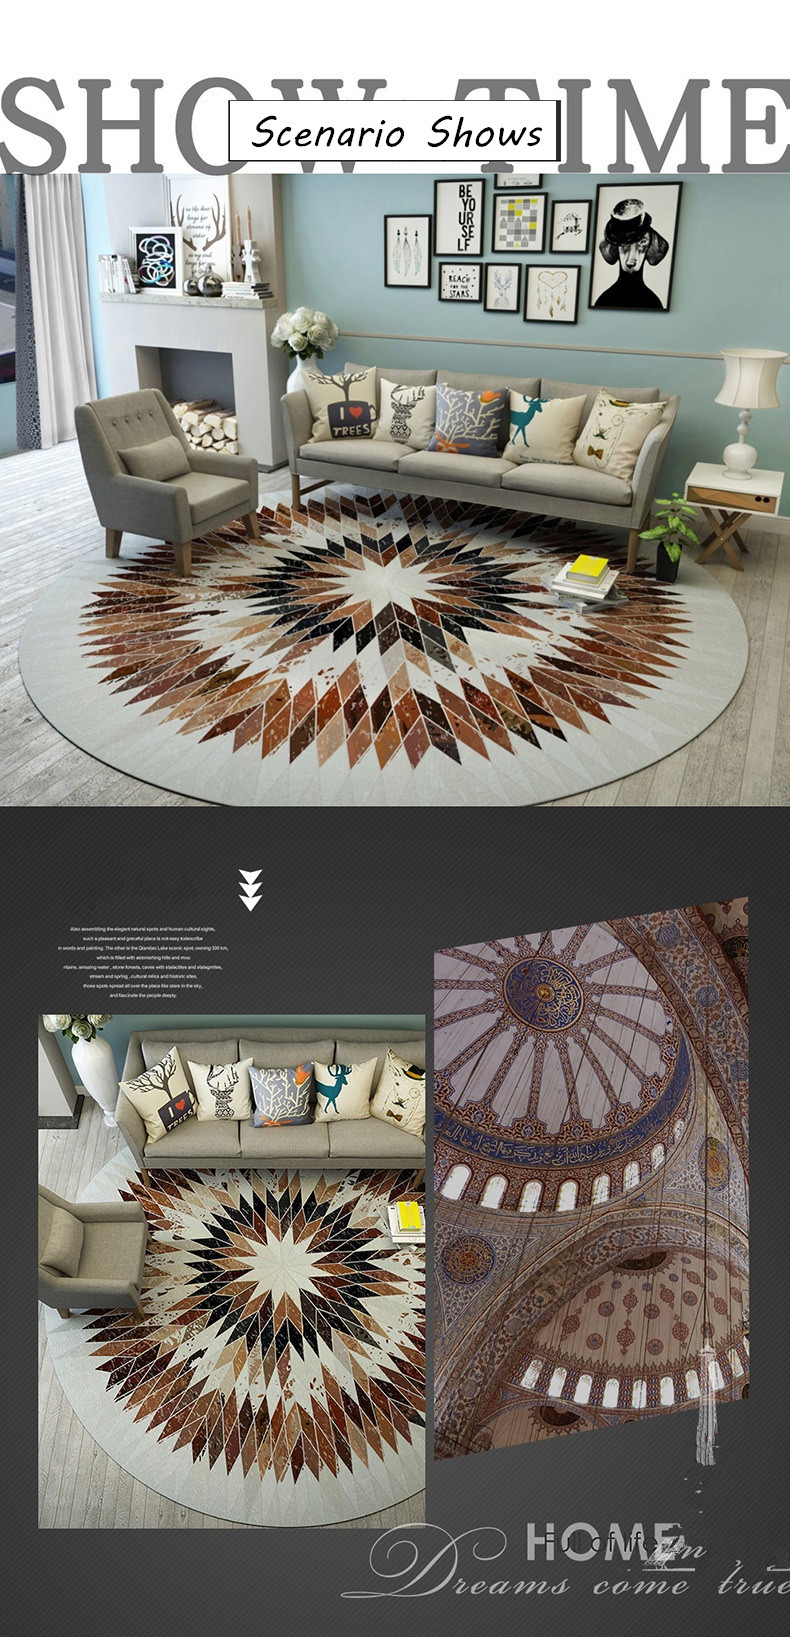 Nordic Wild Round Carpet Computer Chair Round Rug Sofa Coffee Table Floor Mat Modern Rugs And Carpets For Home Living Room